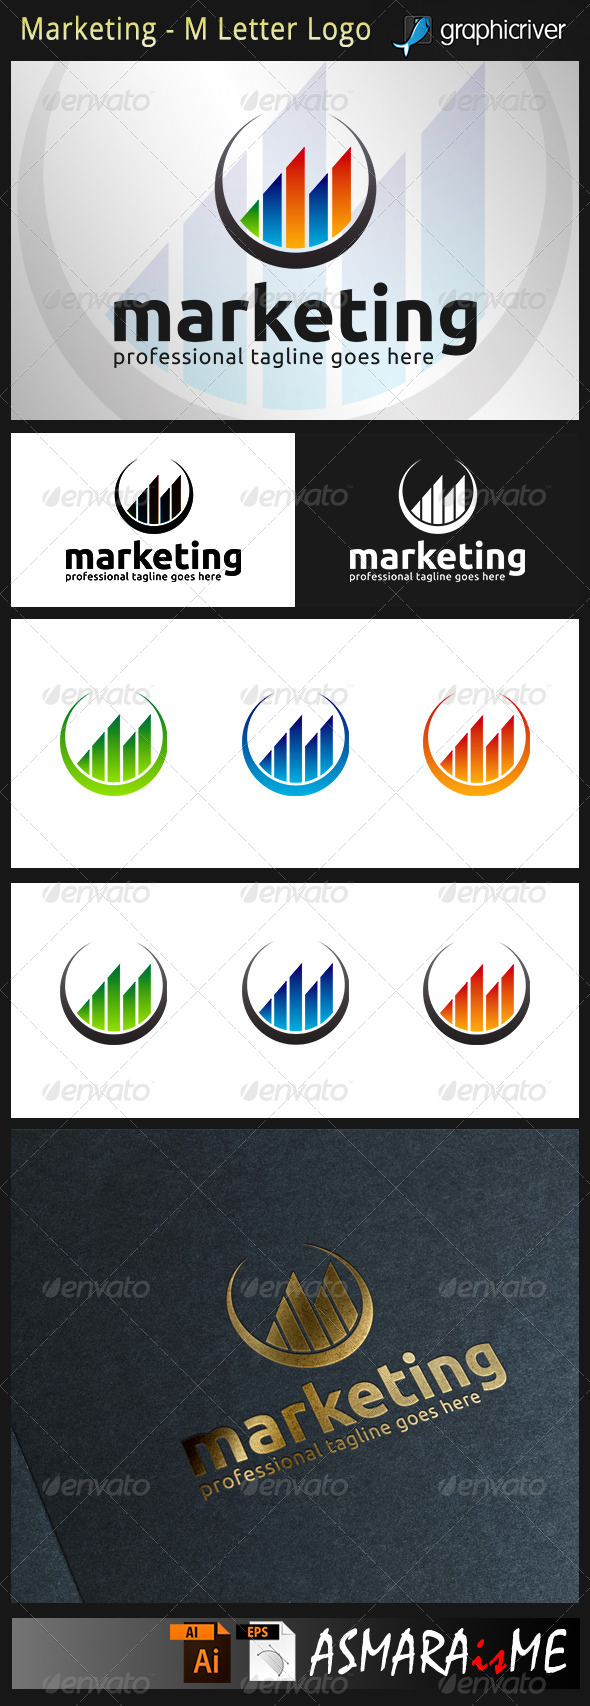 GraphicRiver Marketing M Letter Logo 8783381